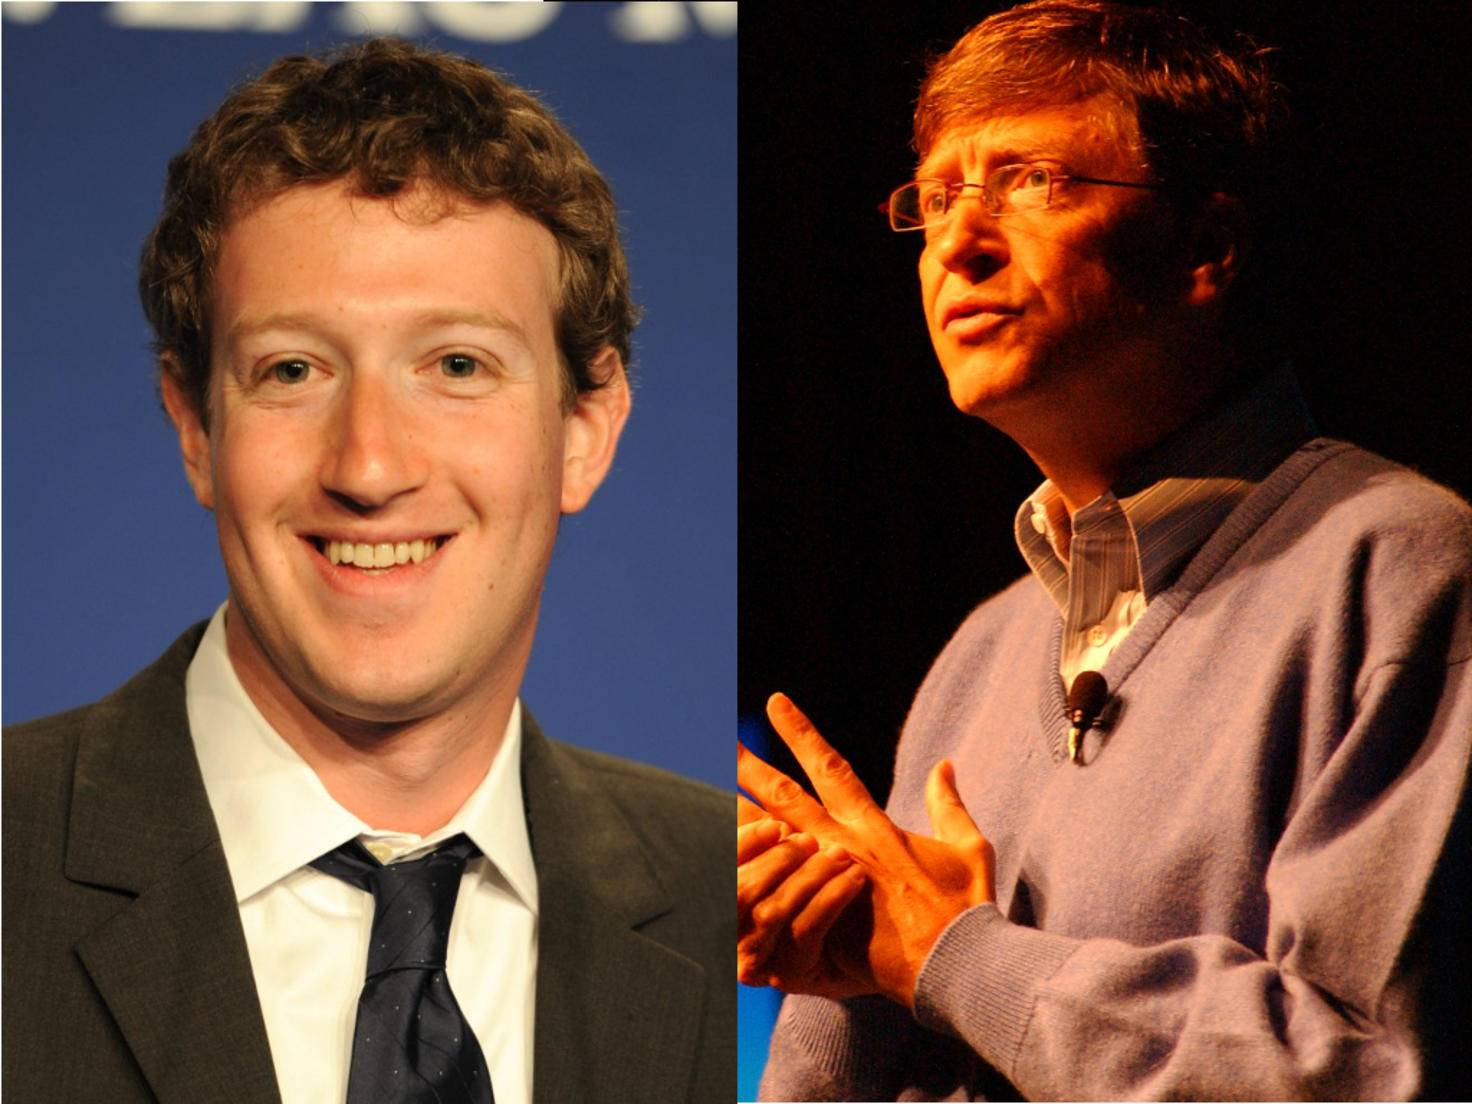 Mark Zuckerberg und Bill Gates